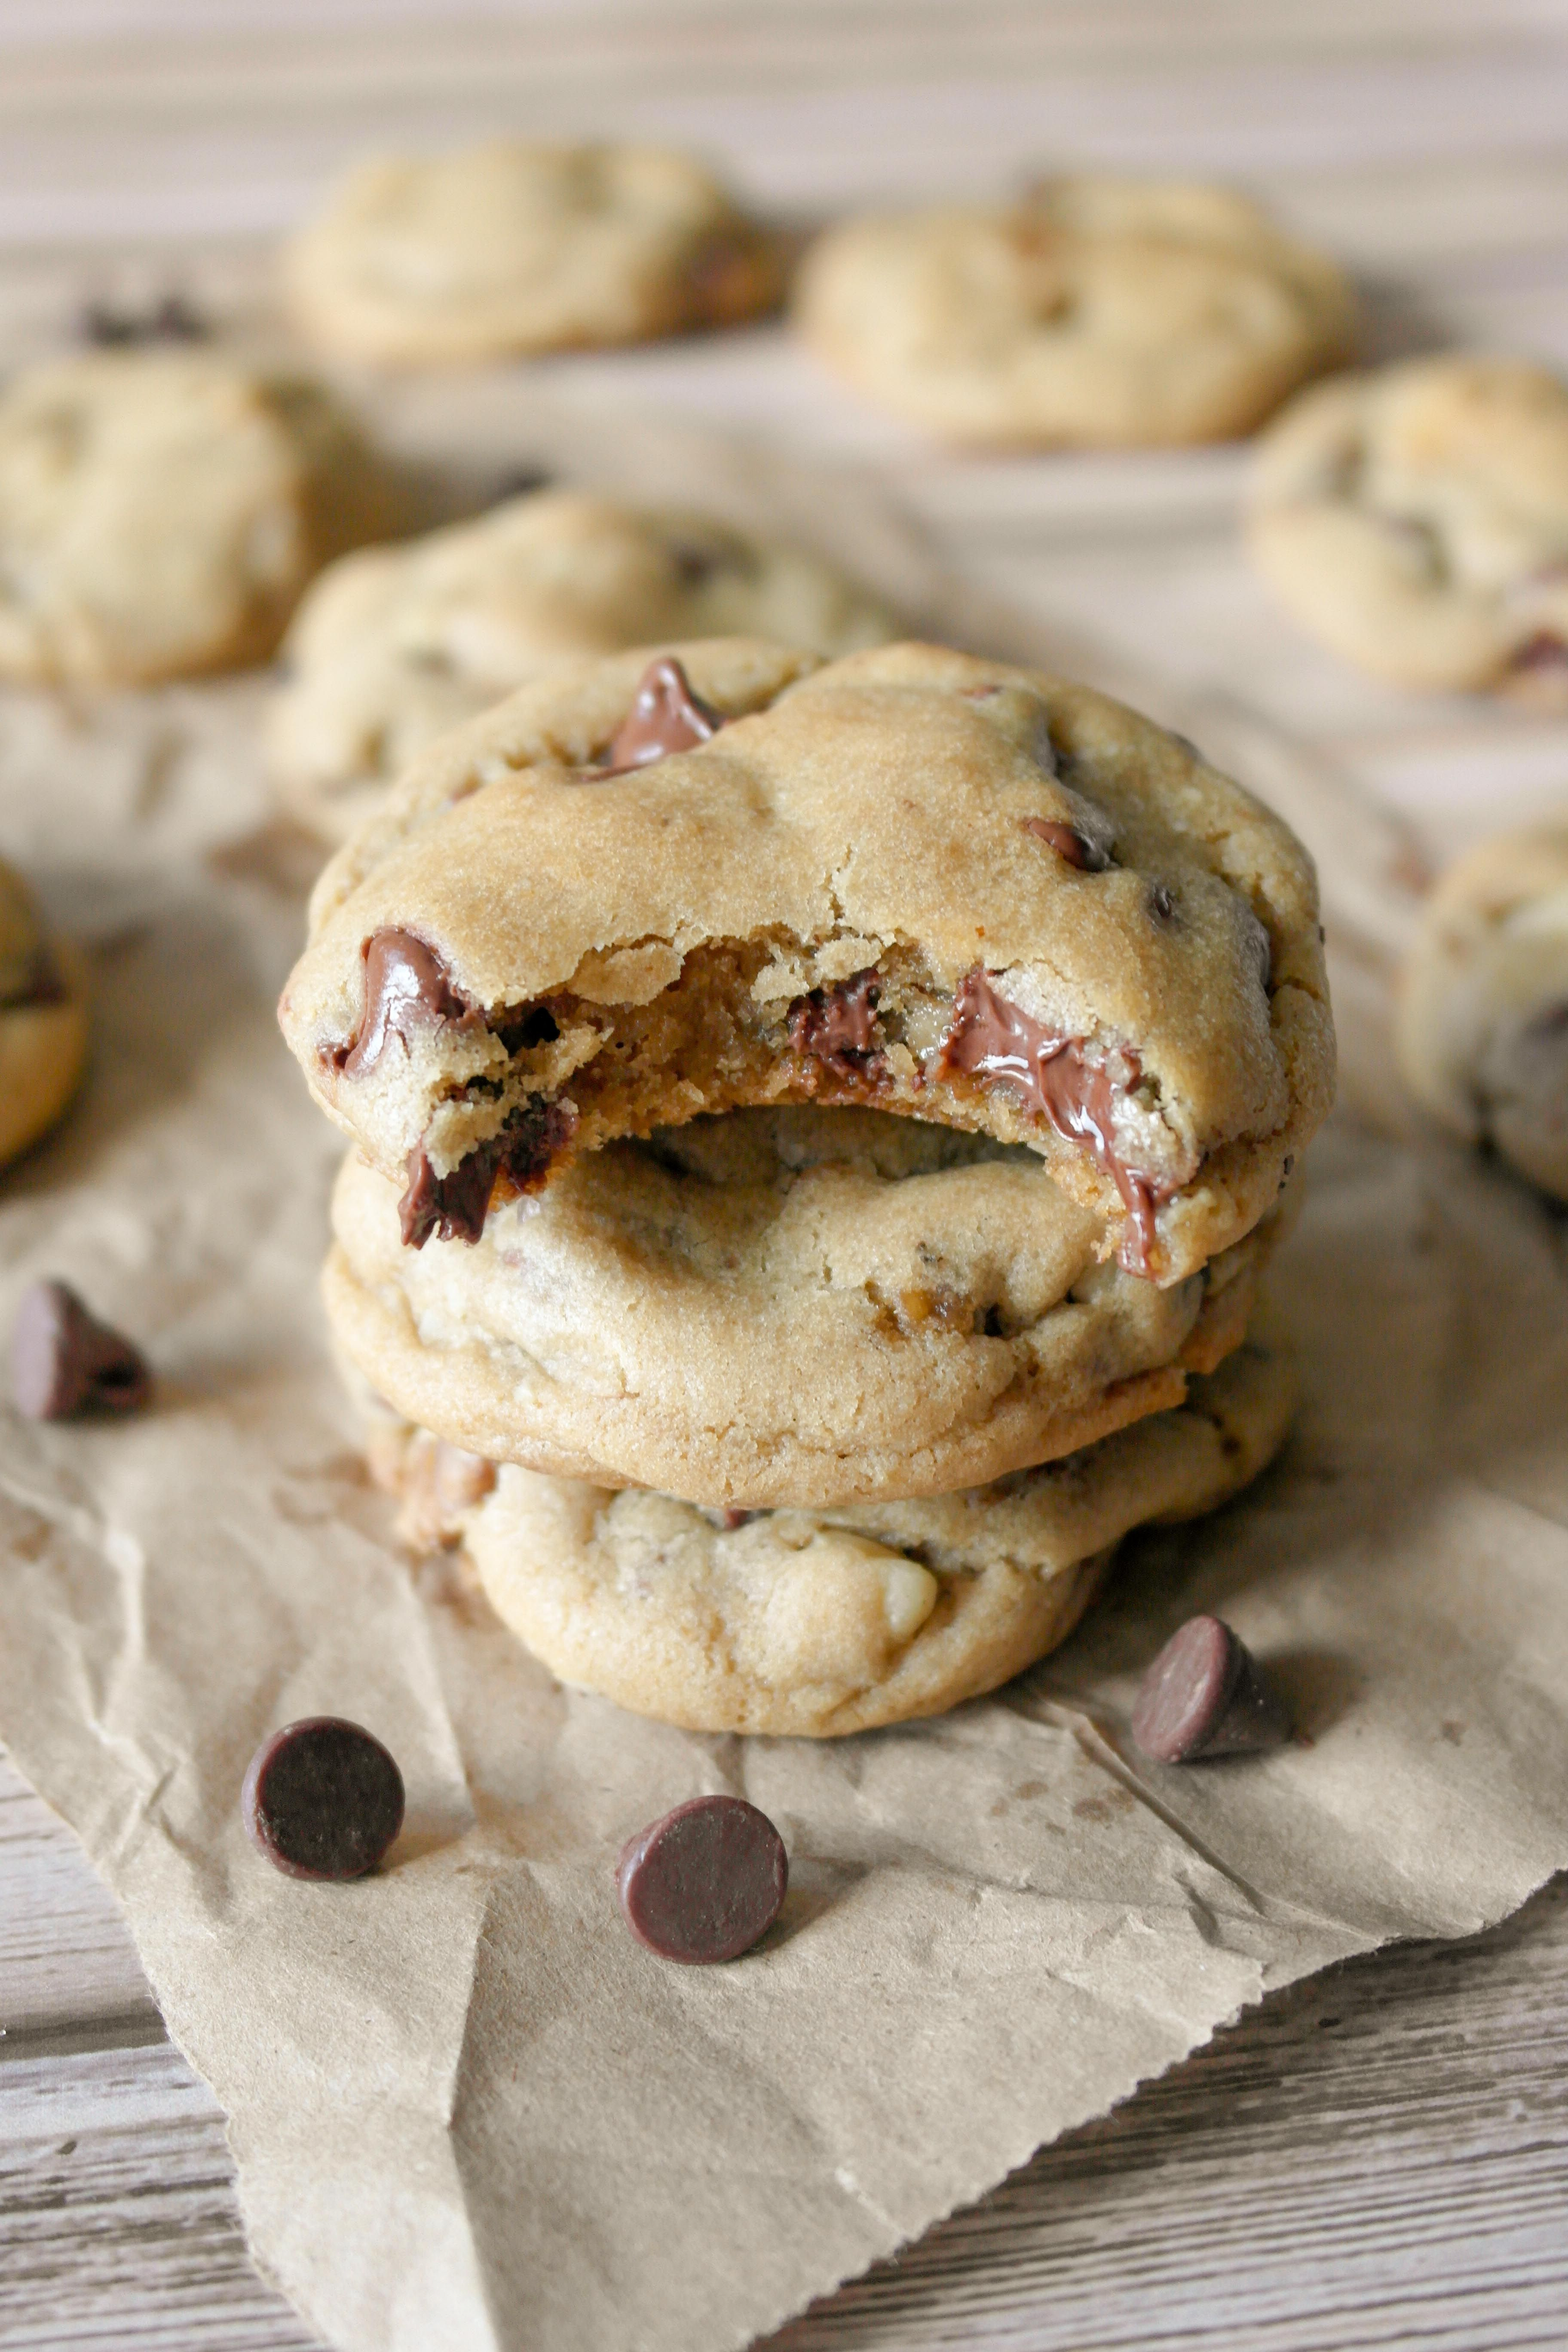 15 of the Best Chocolate Chip Cookie Recipes | Chip cookies